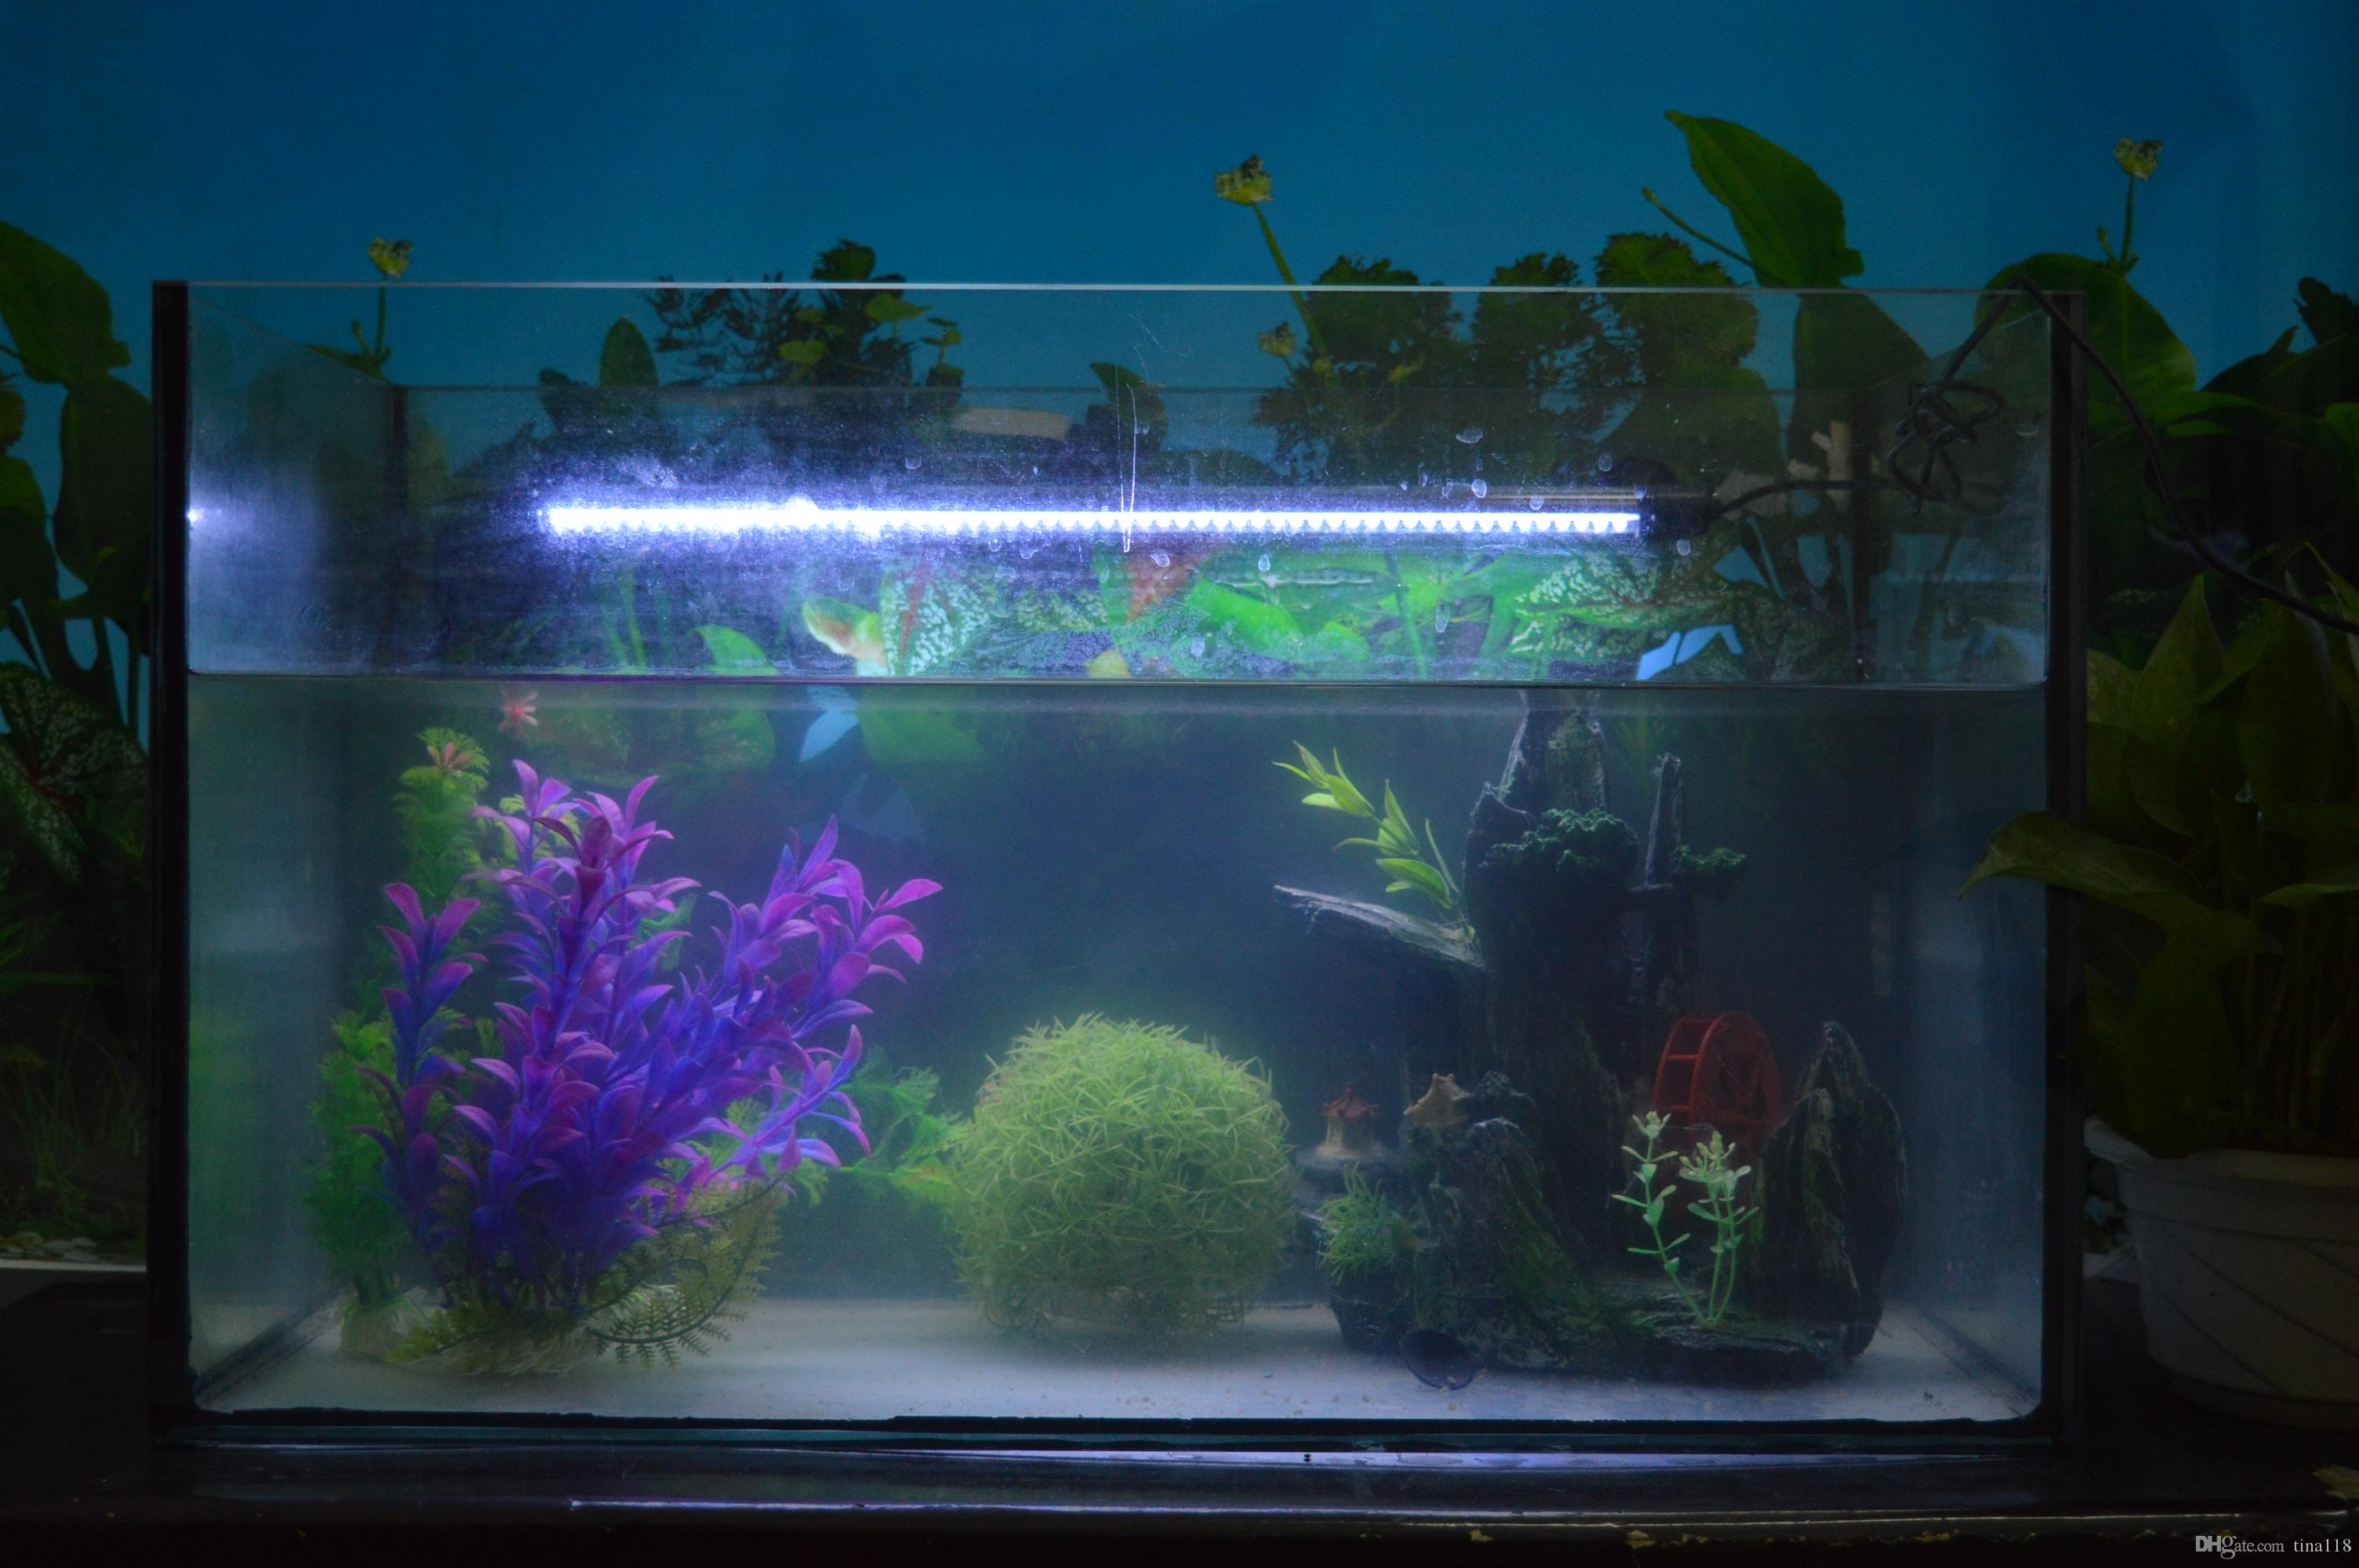 Fish tank lights for sale - See Larger Image